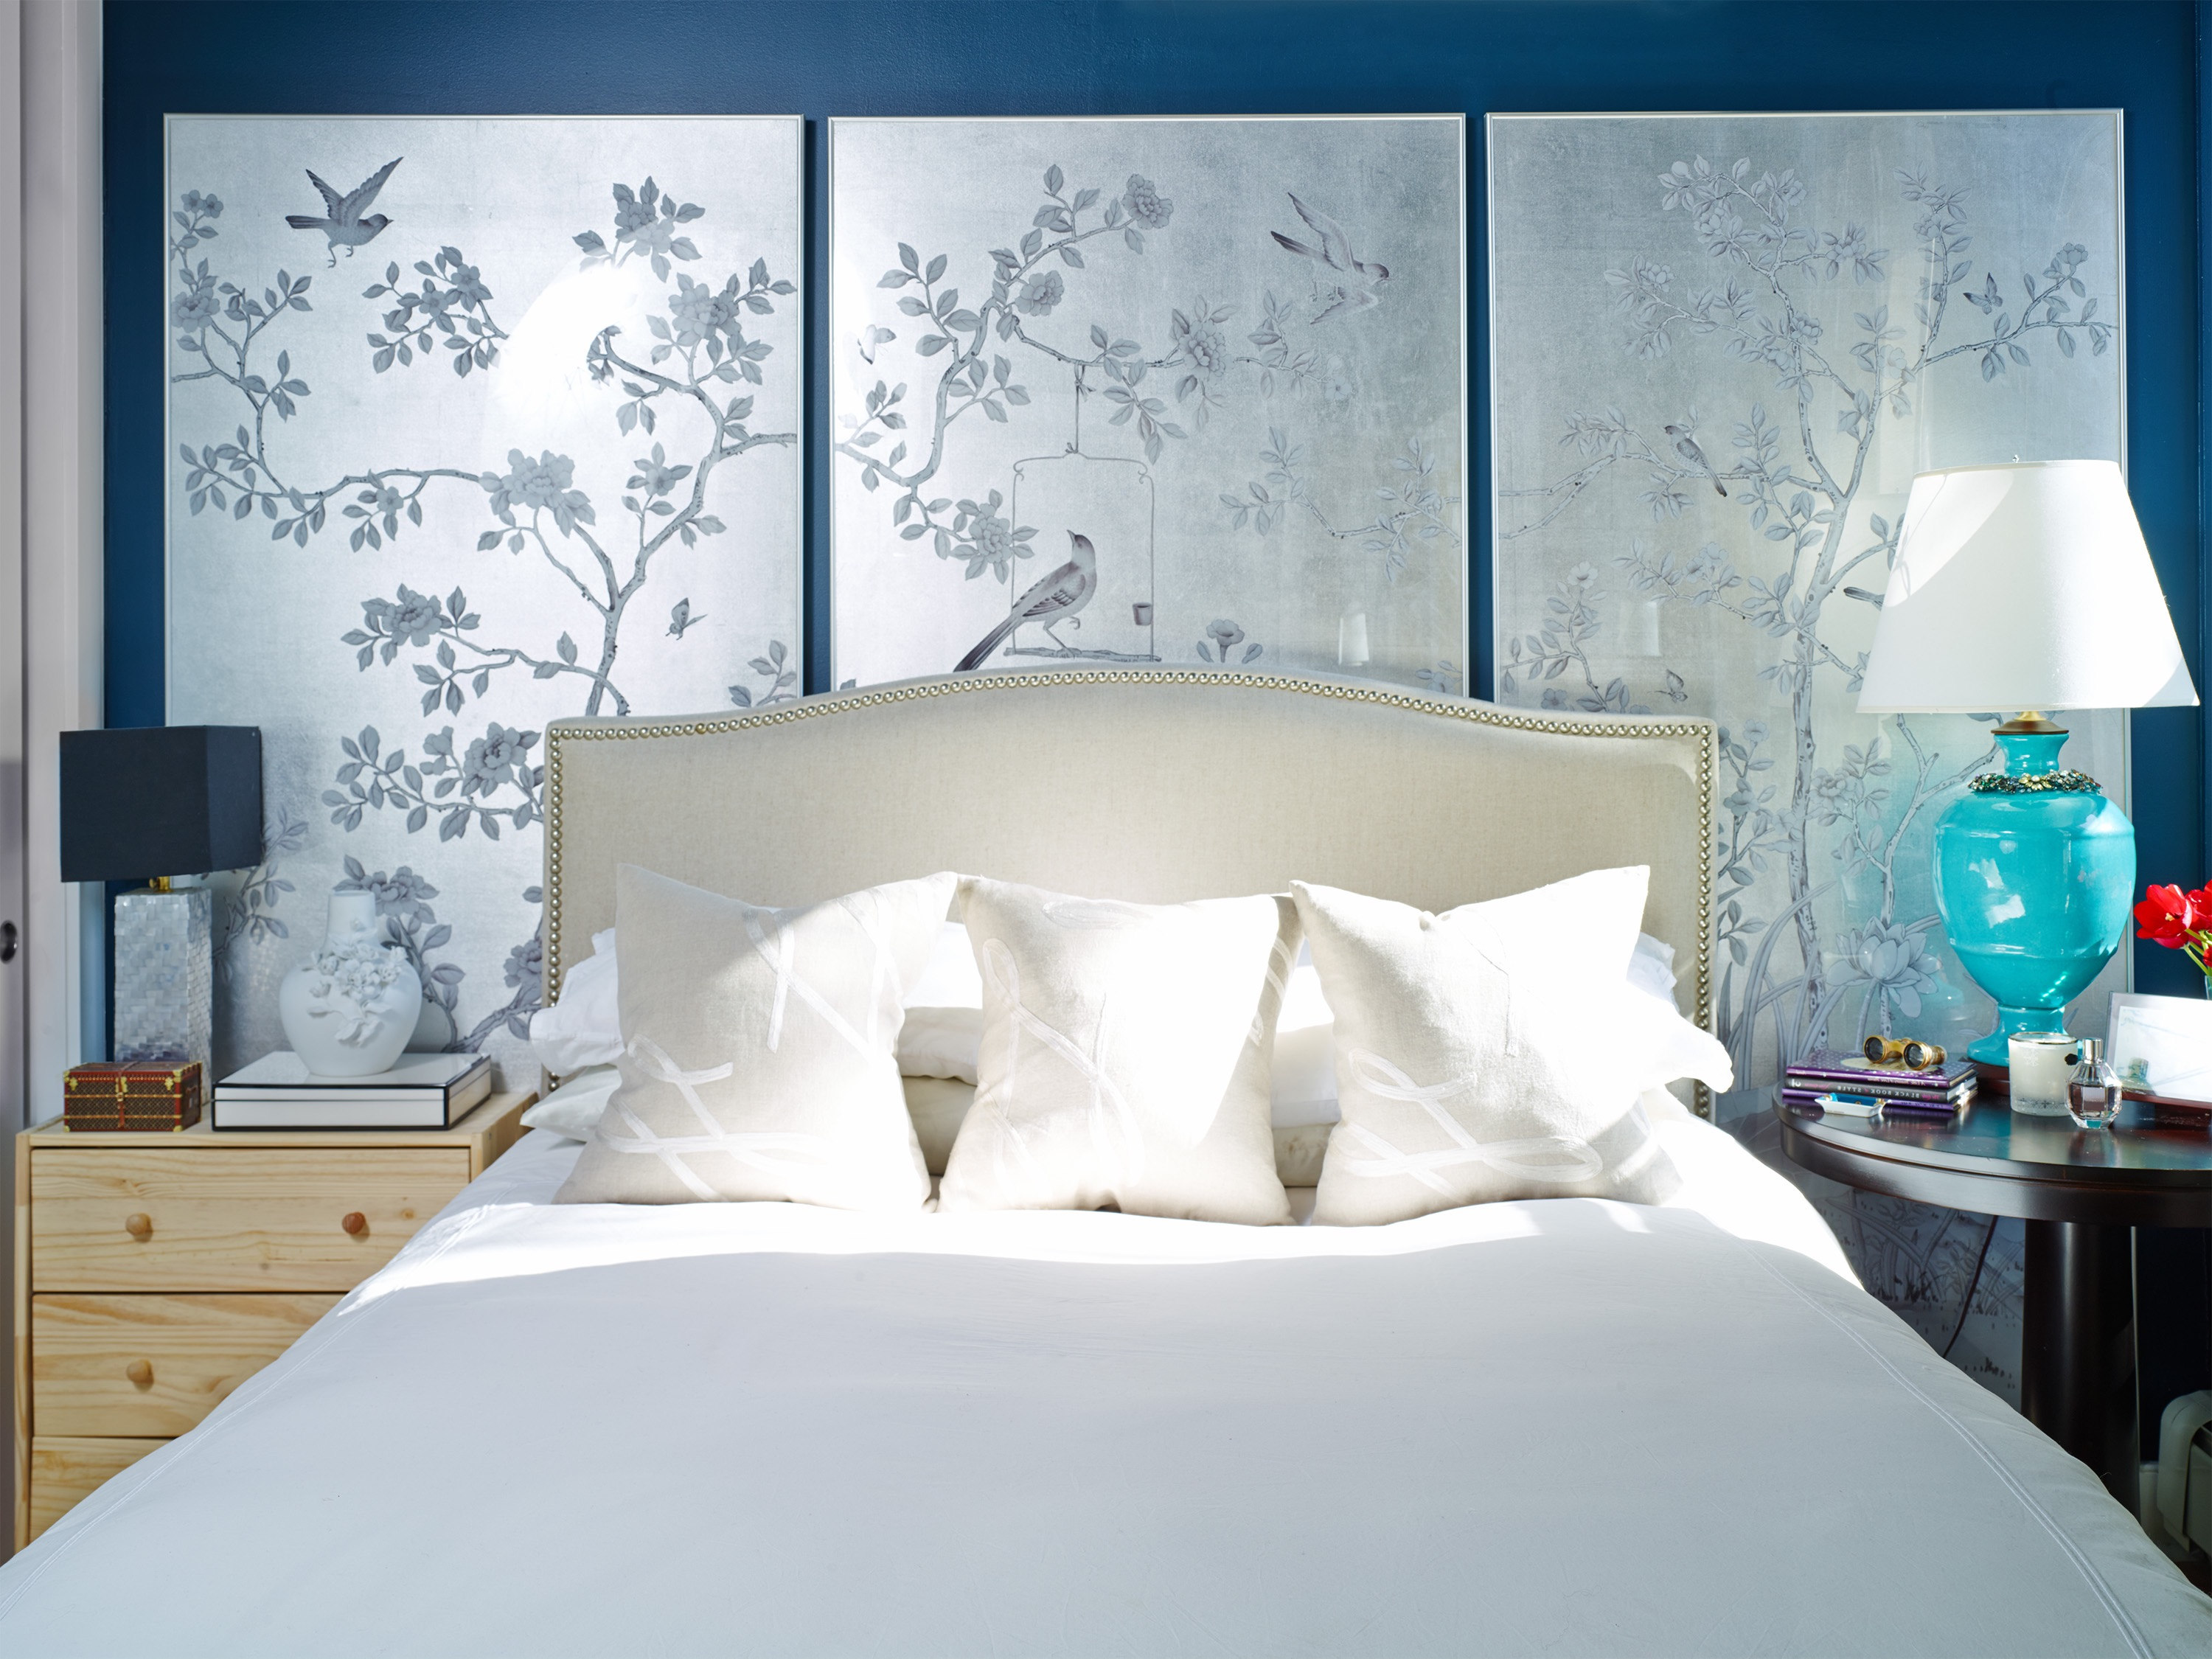 Modern Apartment Bedroom With Framed Hand Painted Wallpaper Panels Line (Image 13 of 19)